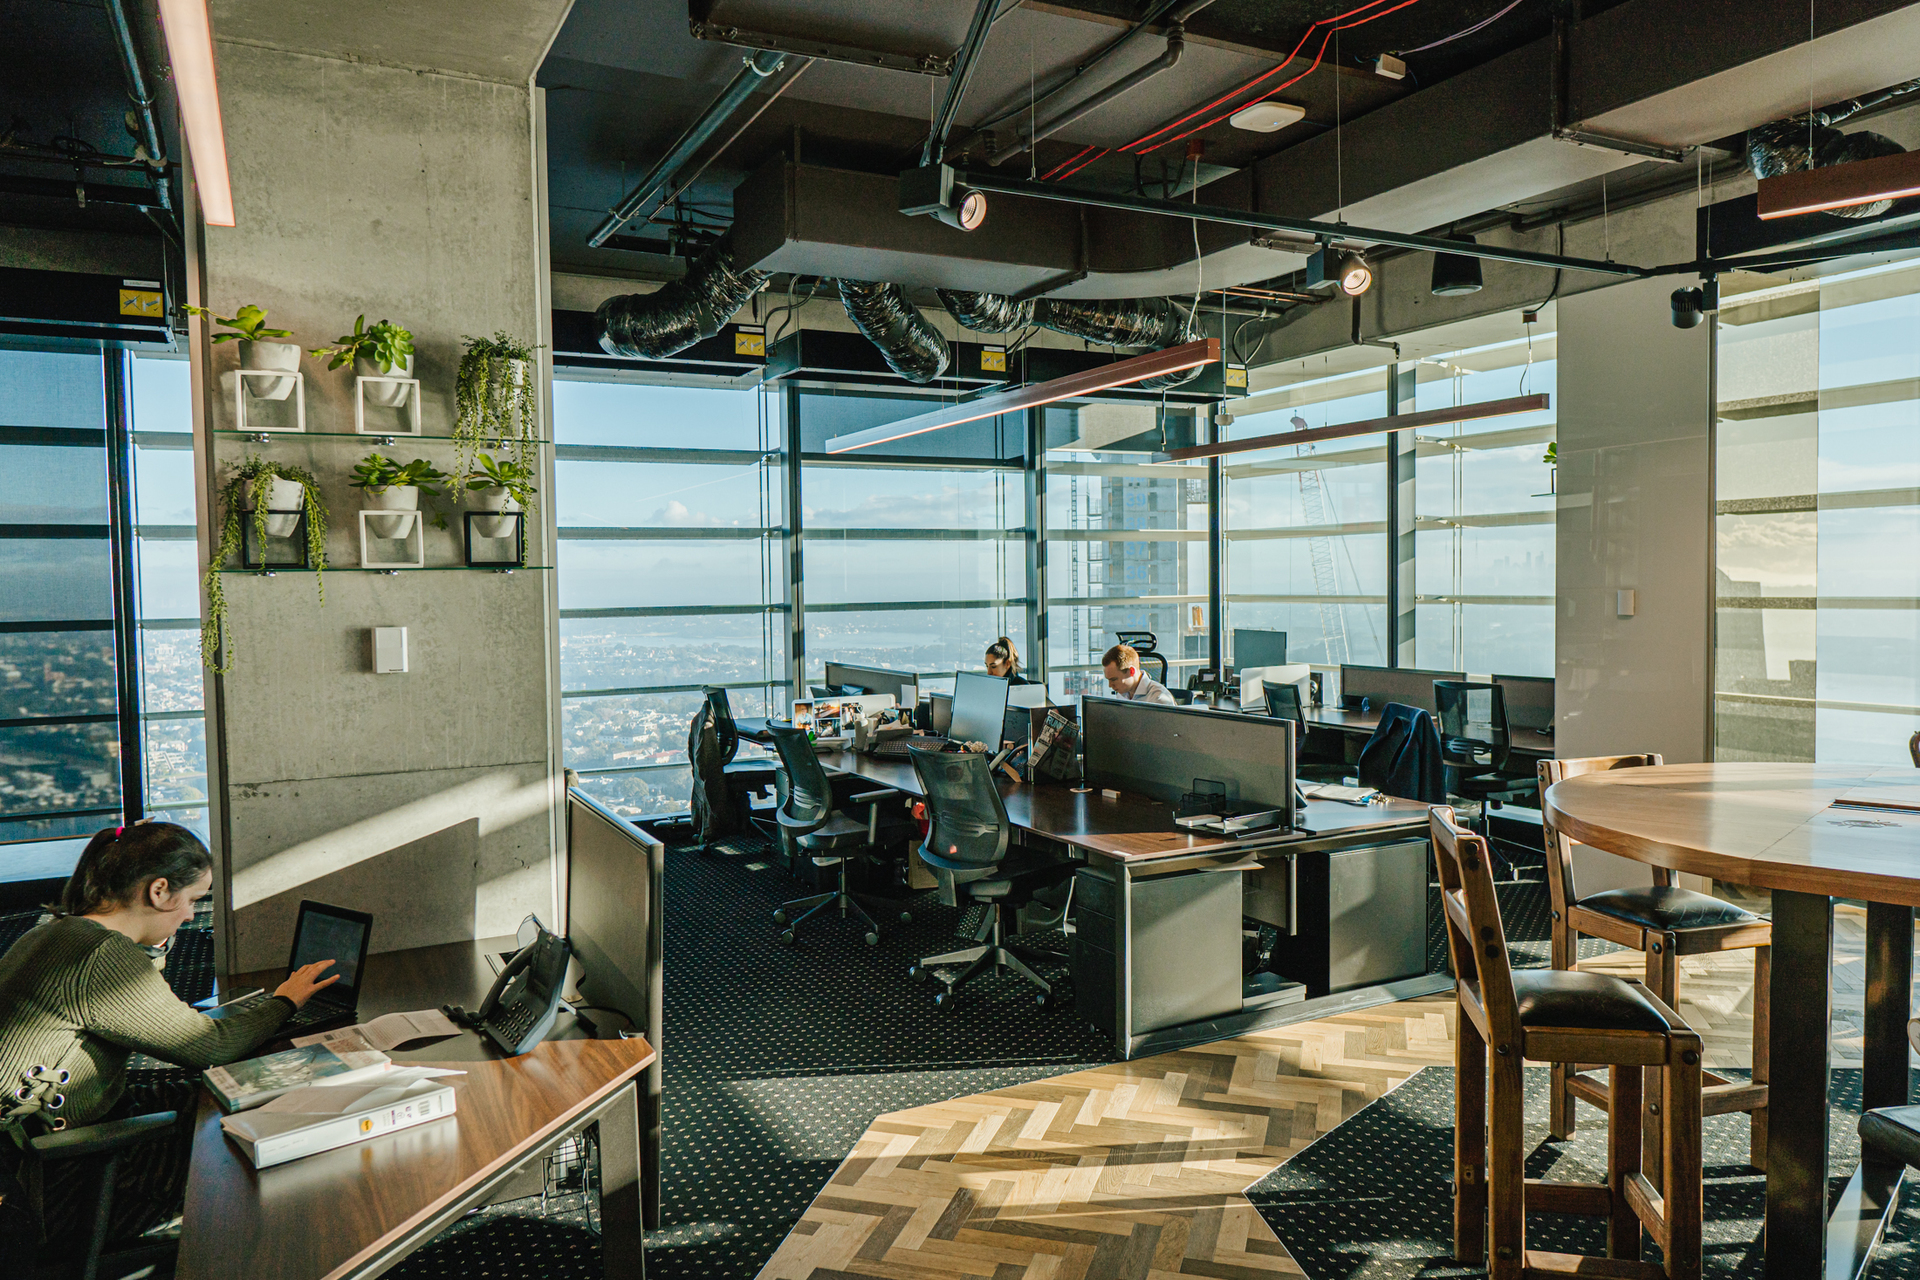 Modern workspace for 4 persons with amazing views